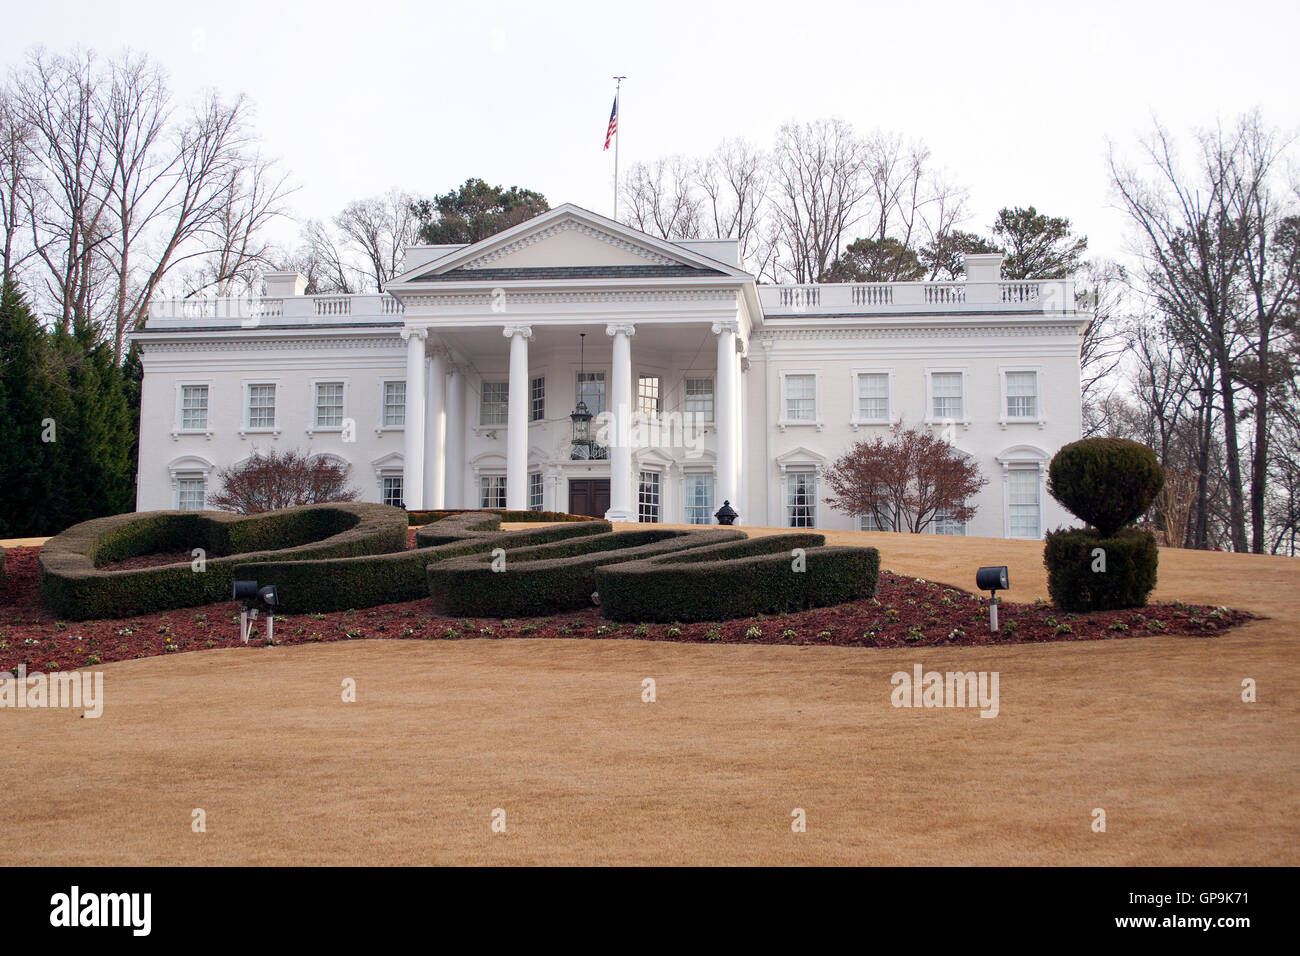 White House replica in Atlanta Georgia - Stock Image